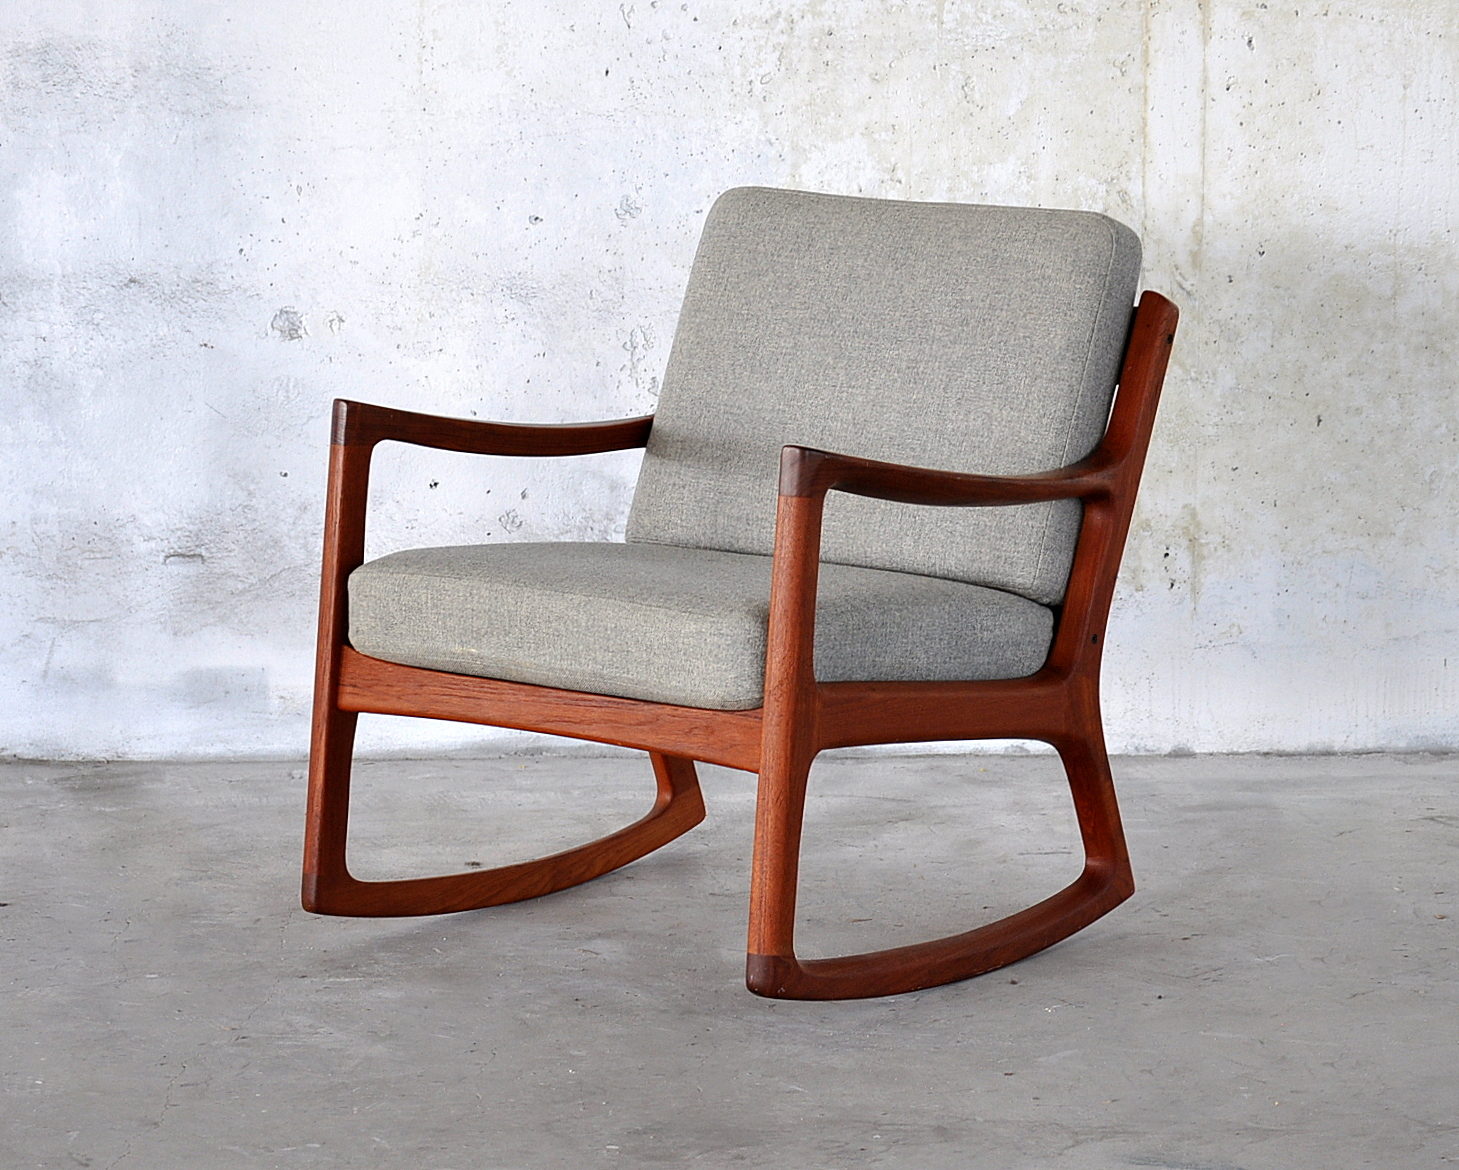 Image of: Classic Oversized Rocking Chair